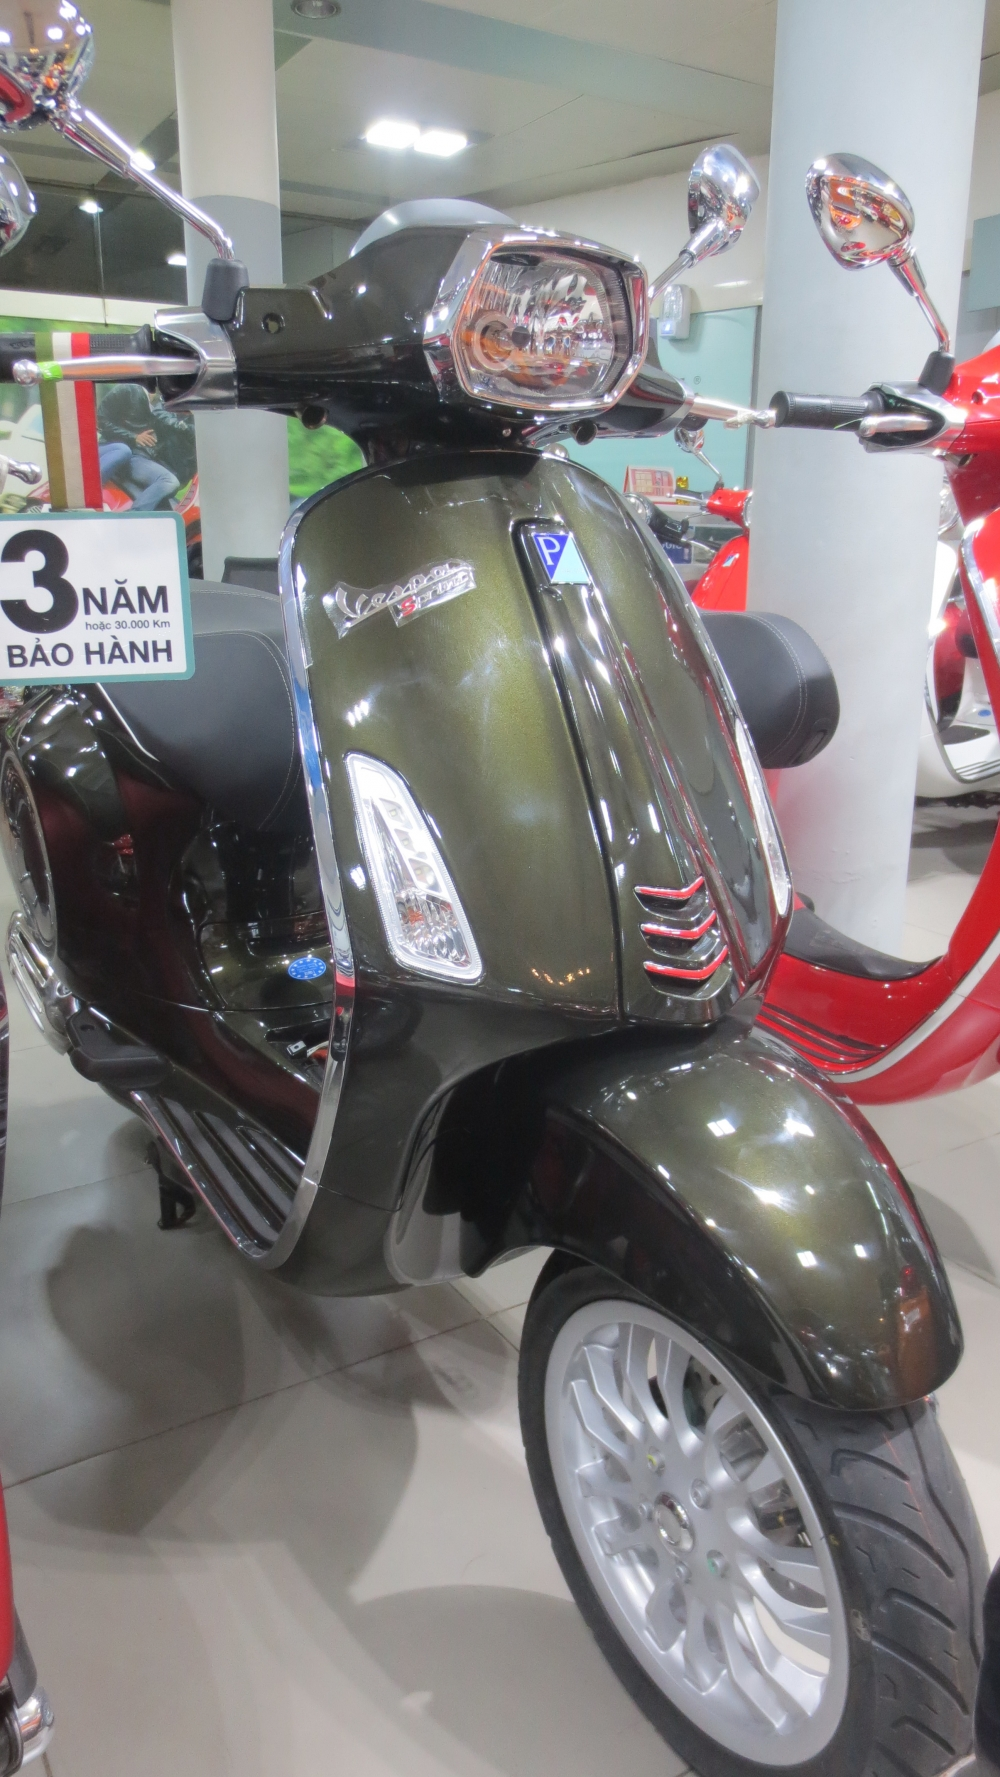 VESPA Sprint ABS chinh hang gia re nhat SG - 14